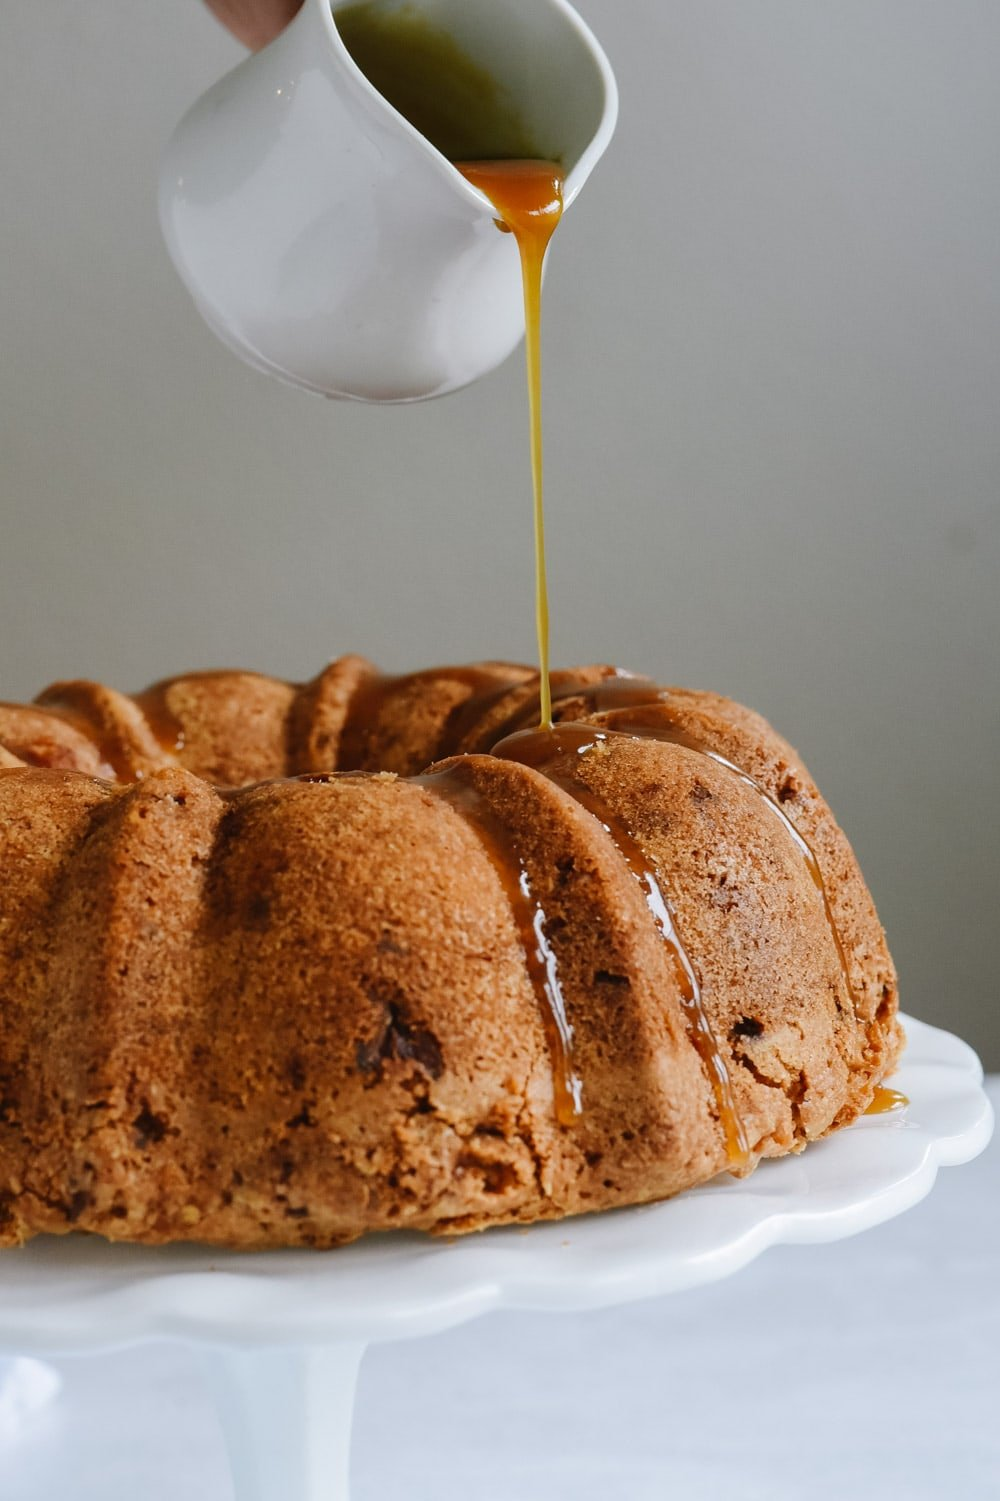 pouring caramel over apple bundt cake